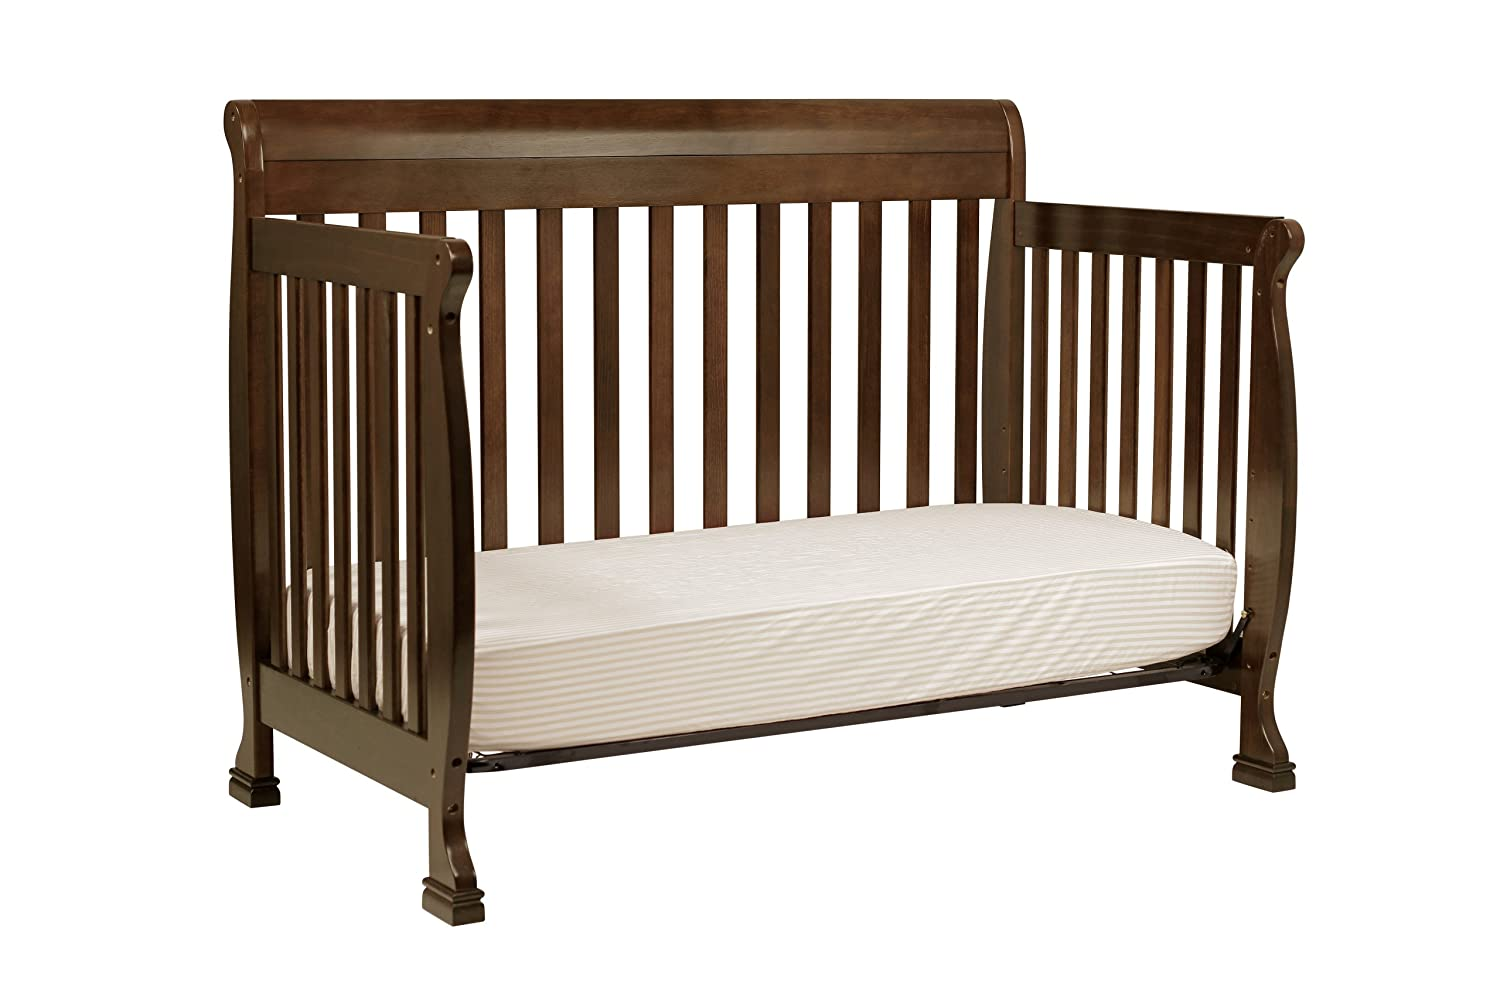 Baby bed furniture - Amazon Com Davinci Kalani 4 In 1 Convertible Crib With Toddler Rail Espresso Toddler Beds Baby